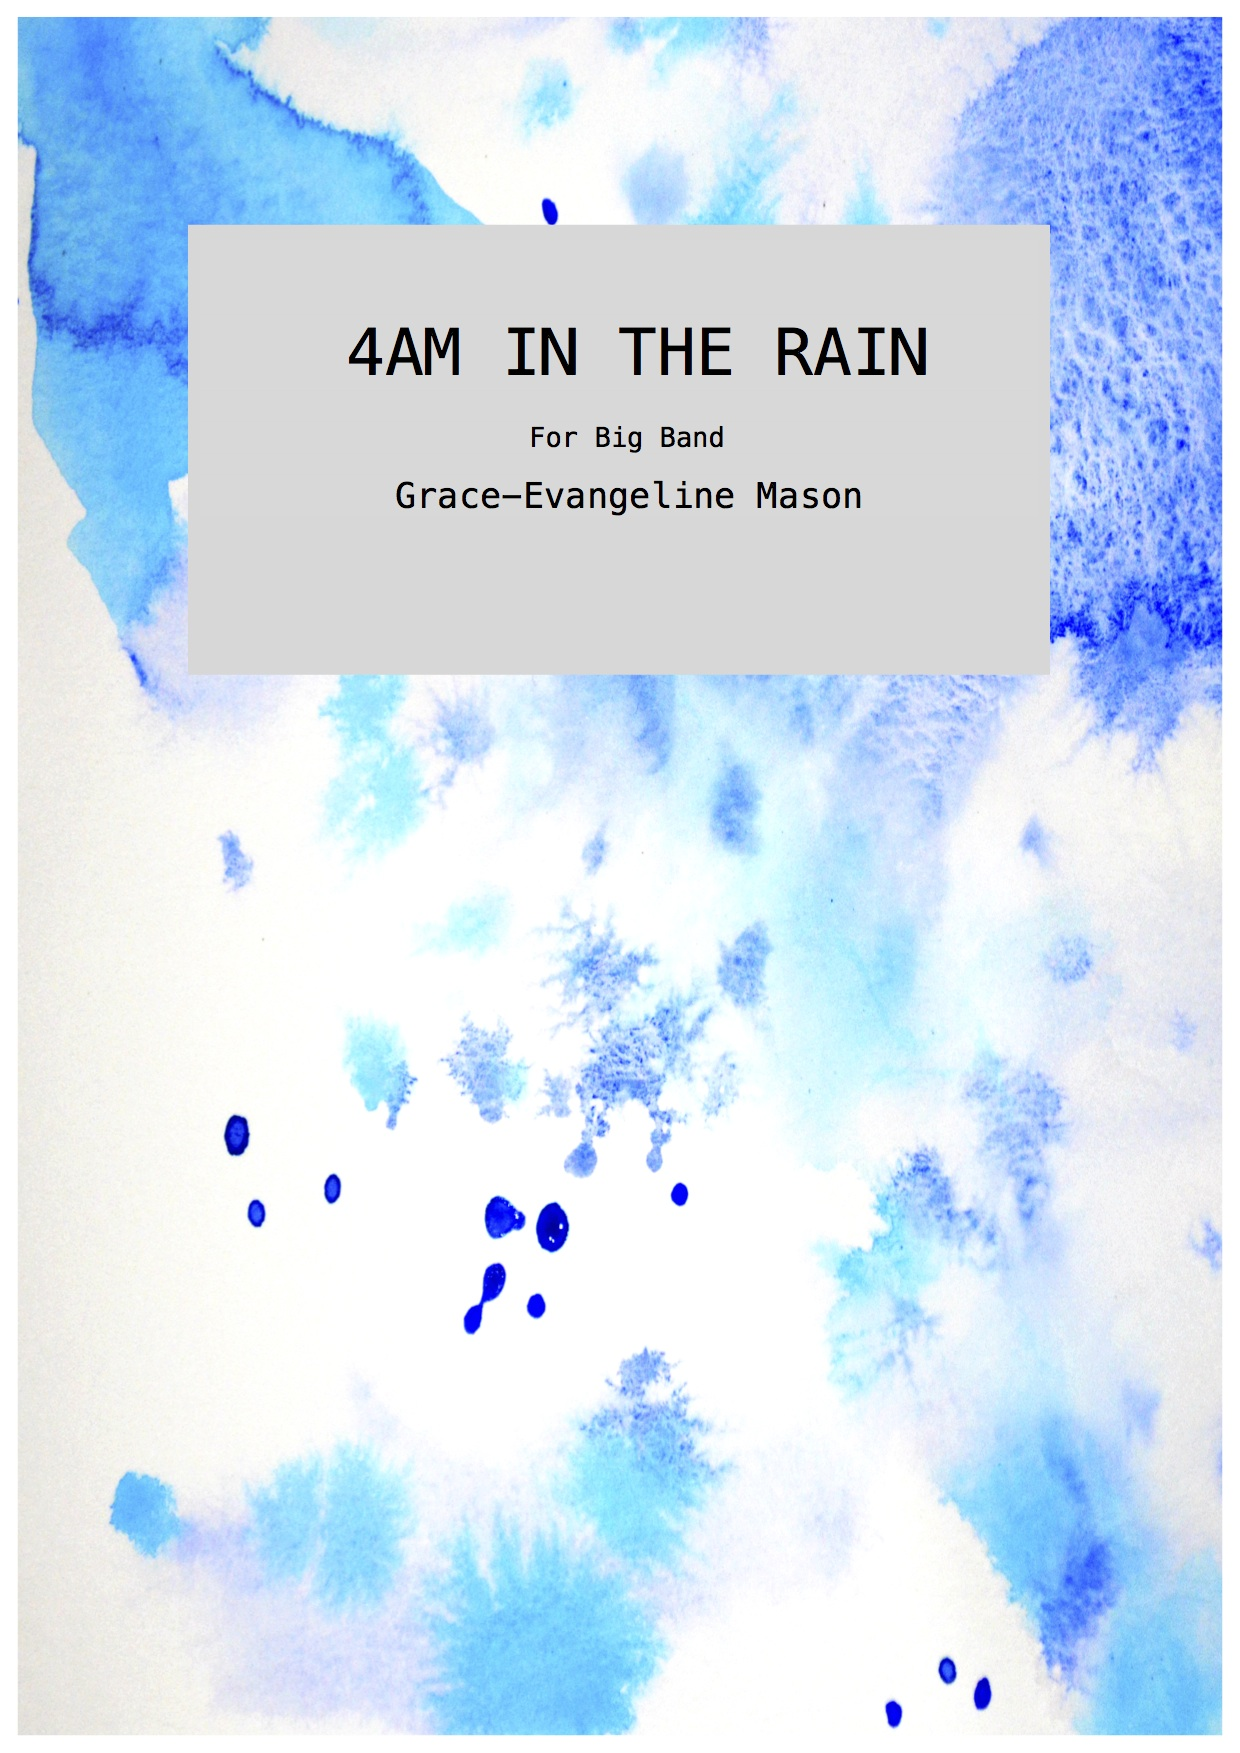 4AM In The Rain (2017) - for Big BandDuration: 5'Written for RNCM Jazz Collective performance (12/05/17)©Cover Image: '4AM In The Rain' Painting by Grace-Evangeline Mason 2017